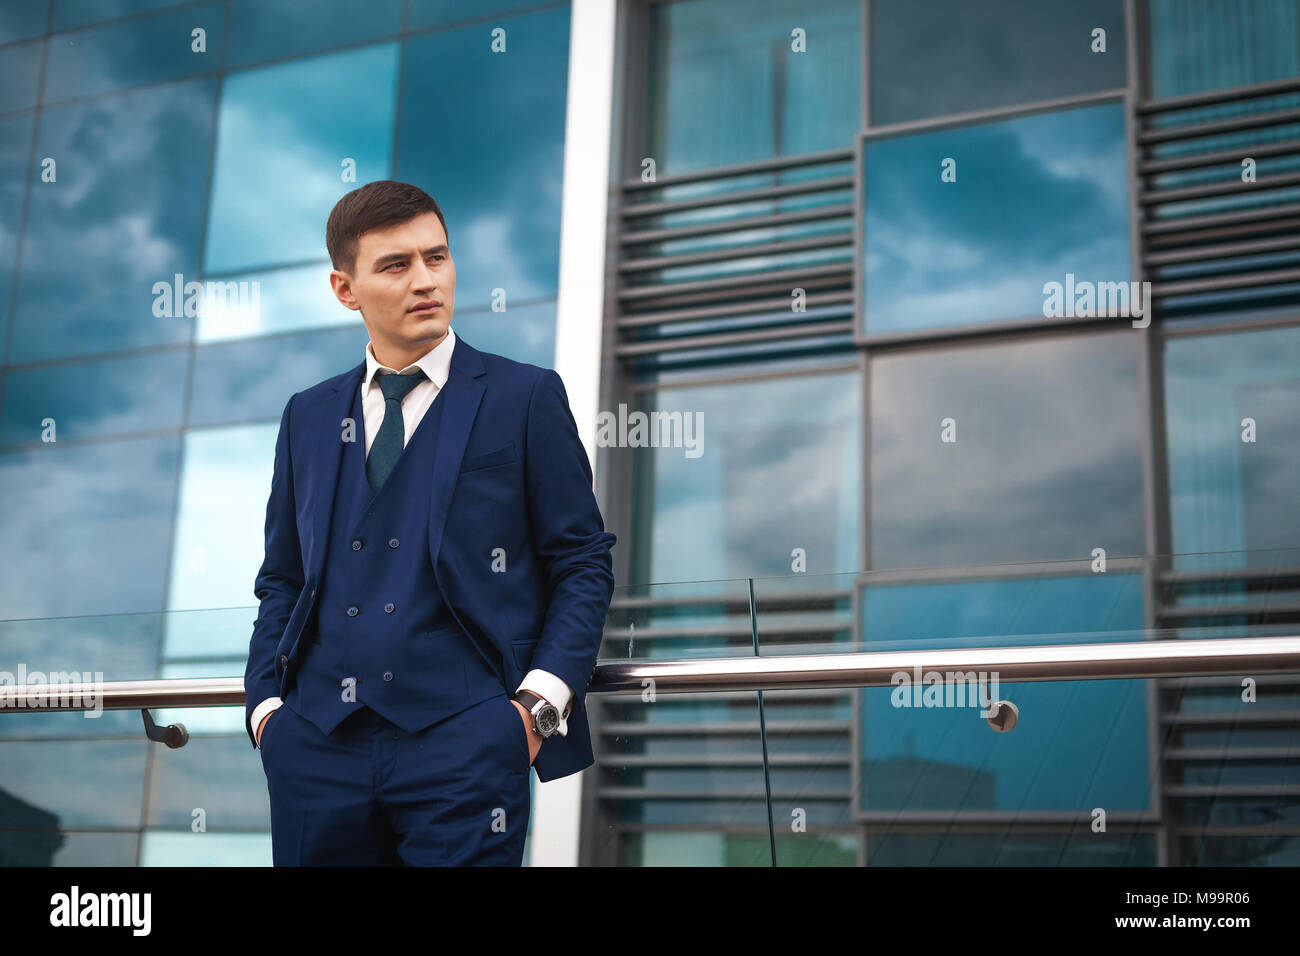 Thoughtfull groom in a suit waiting for the bride - Stock Image